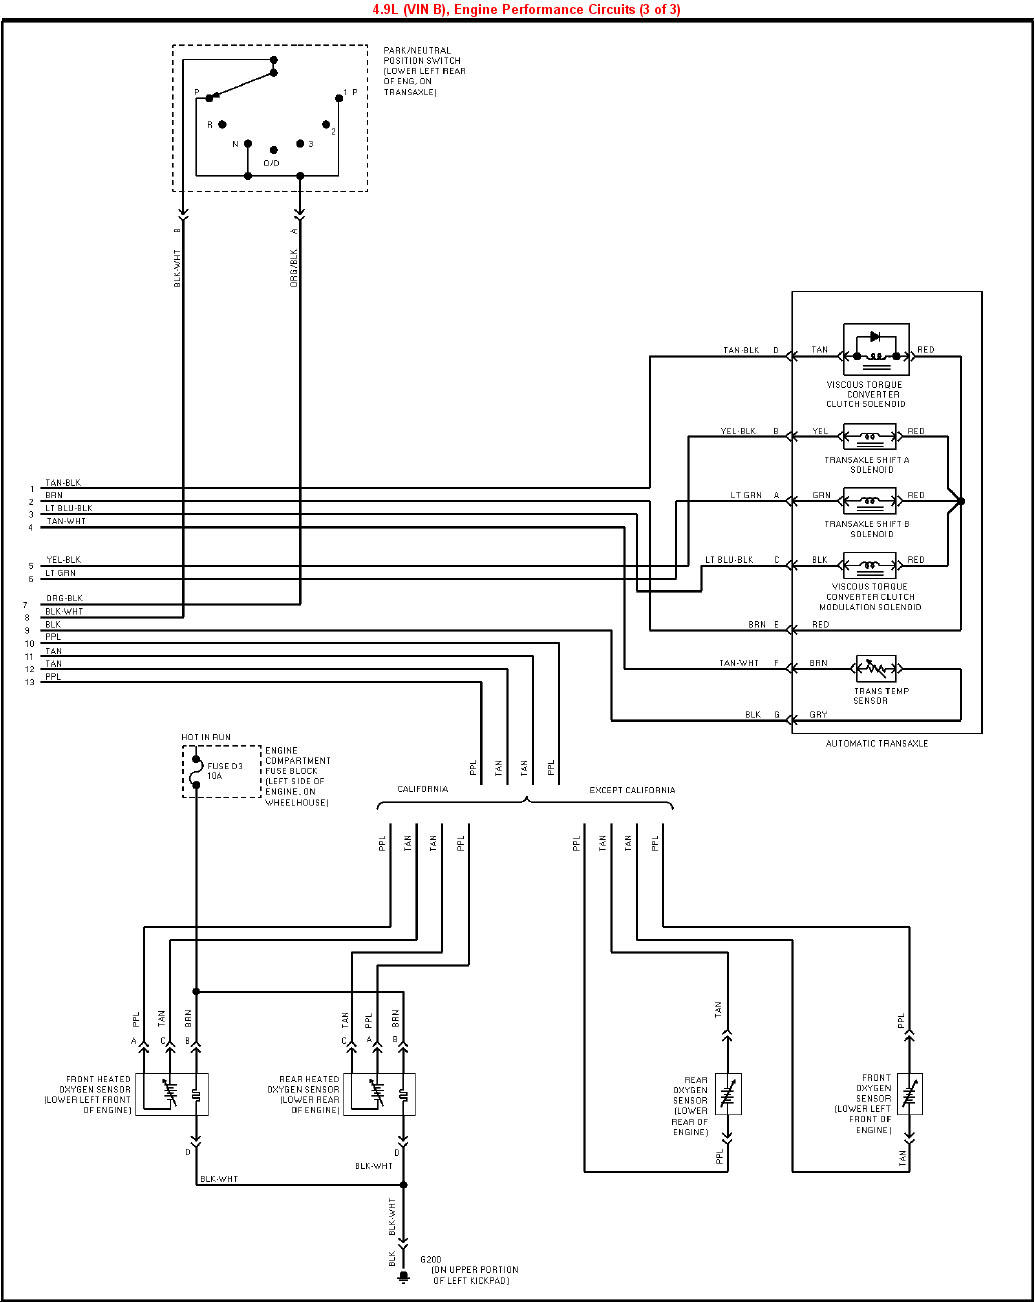 1995 Cadillac Deville 4.9L VIN B PCM (3 of 3) 1999 cadillac deville wiring diagram dolgular com  at webbmarketing.co